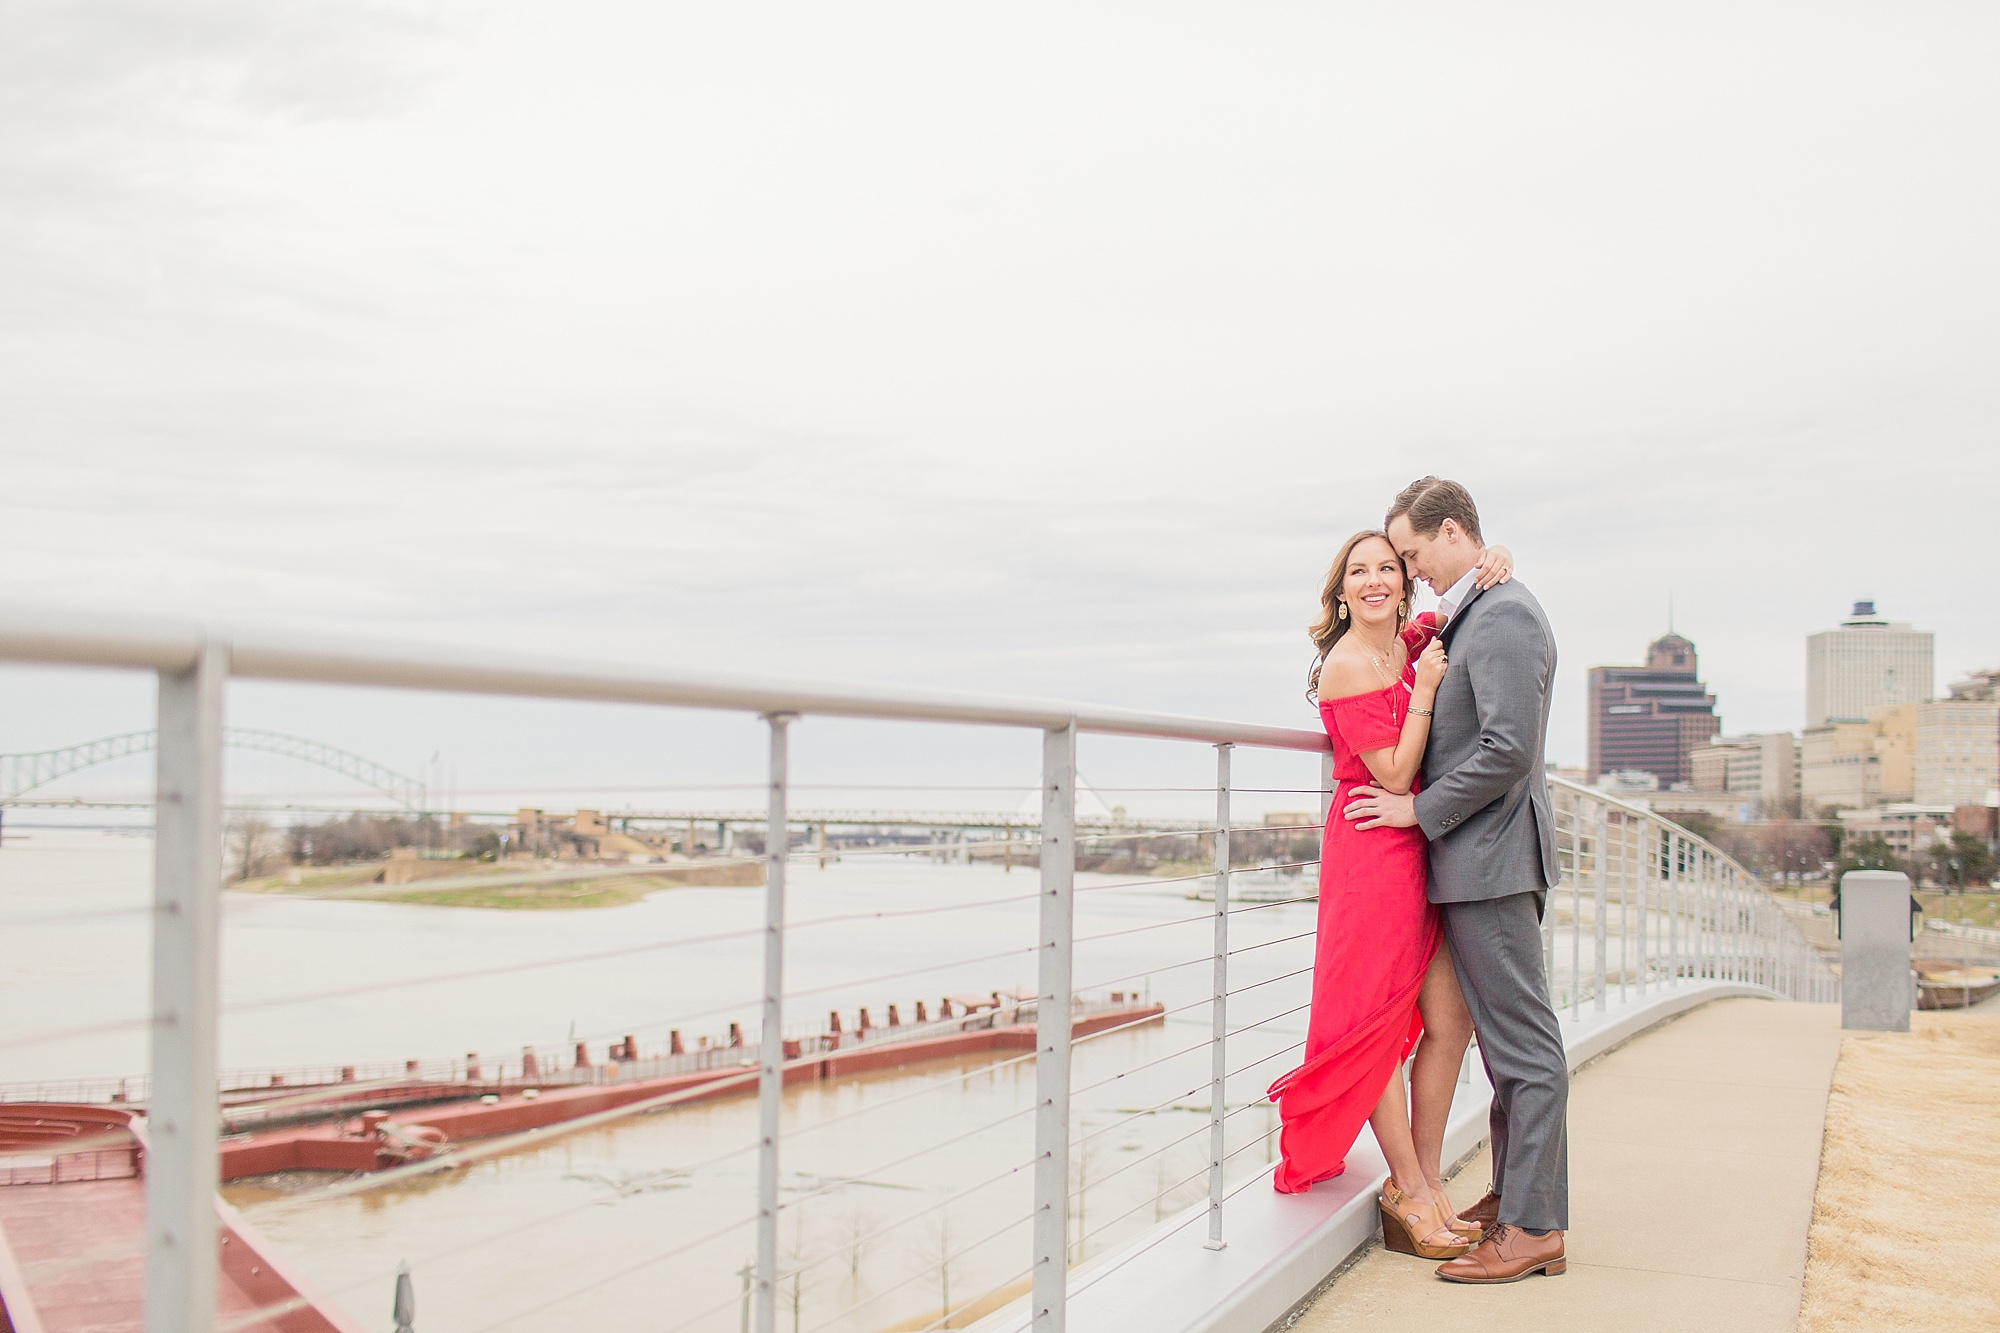 downtown-memphis-engagement-photographer_0001.jpg